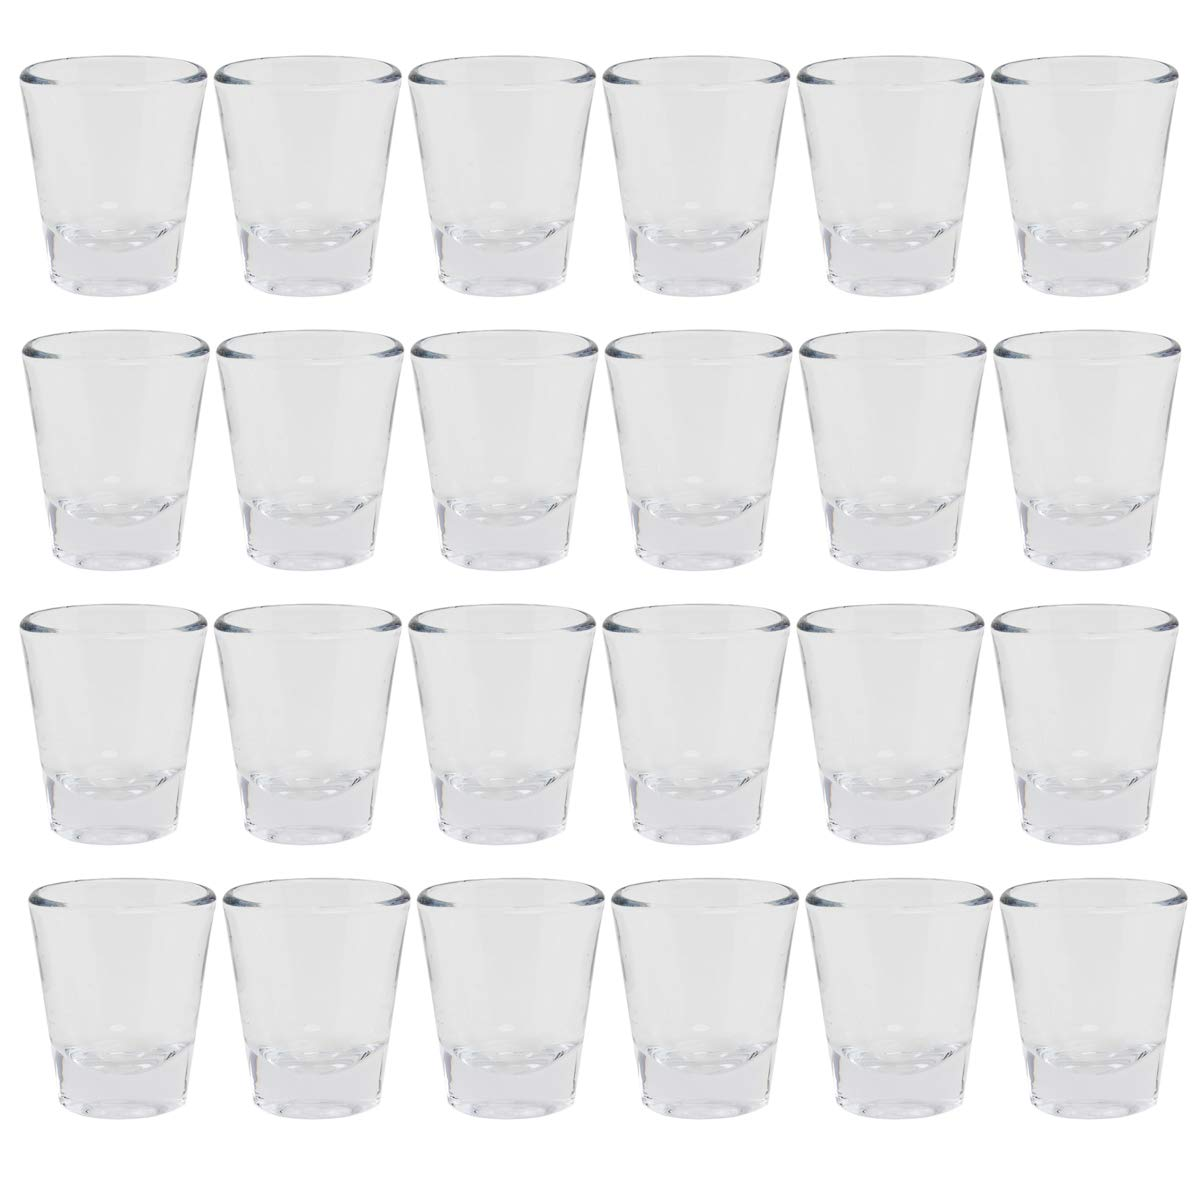 Anchor Hocking (24 Pack) Shot Glass Set 1.5oz Drink Glasses Dinnerware Party Bar Restaurant Supplies